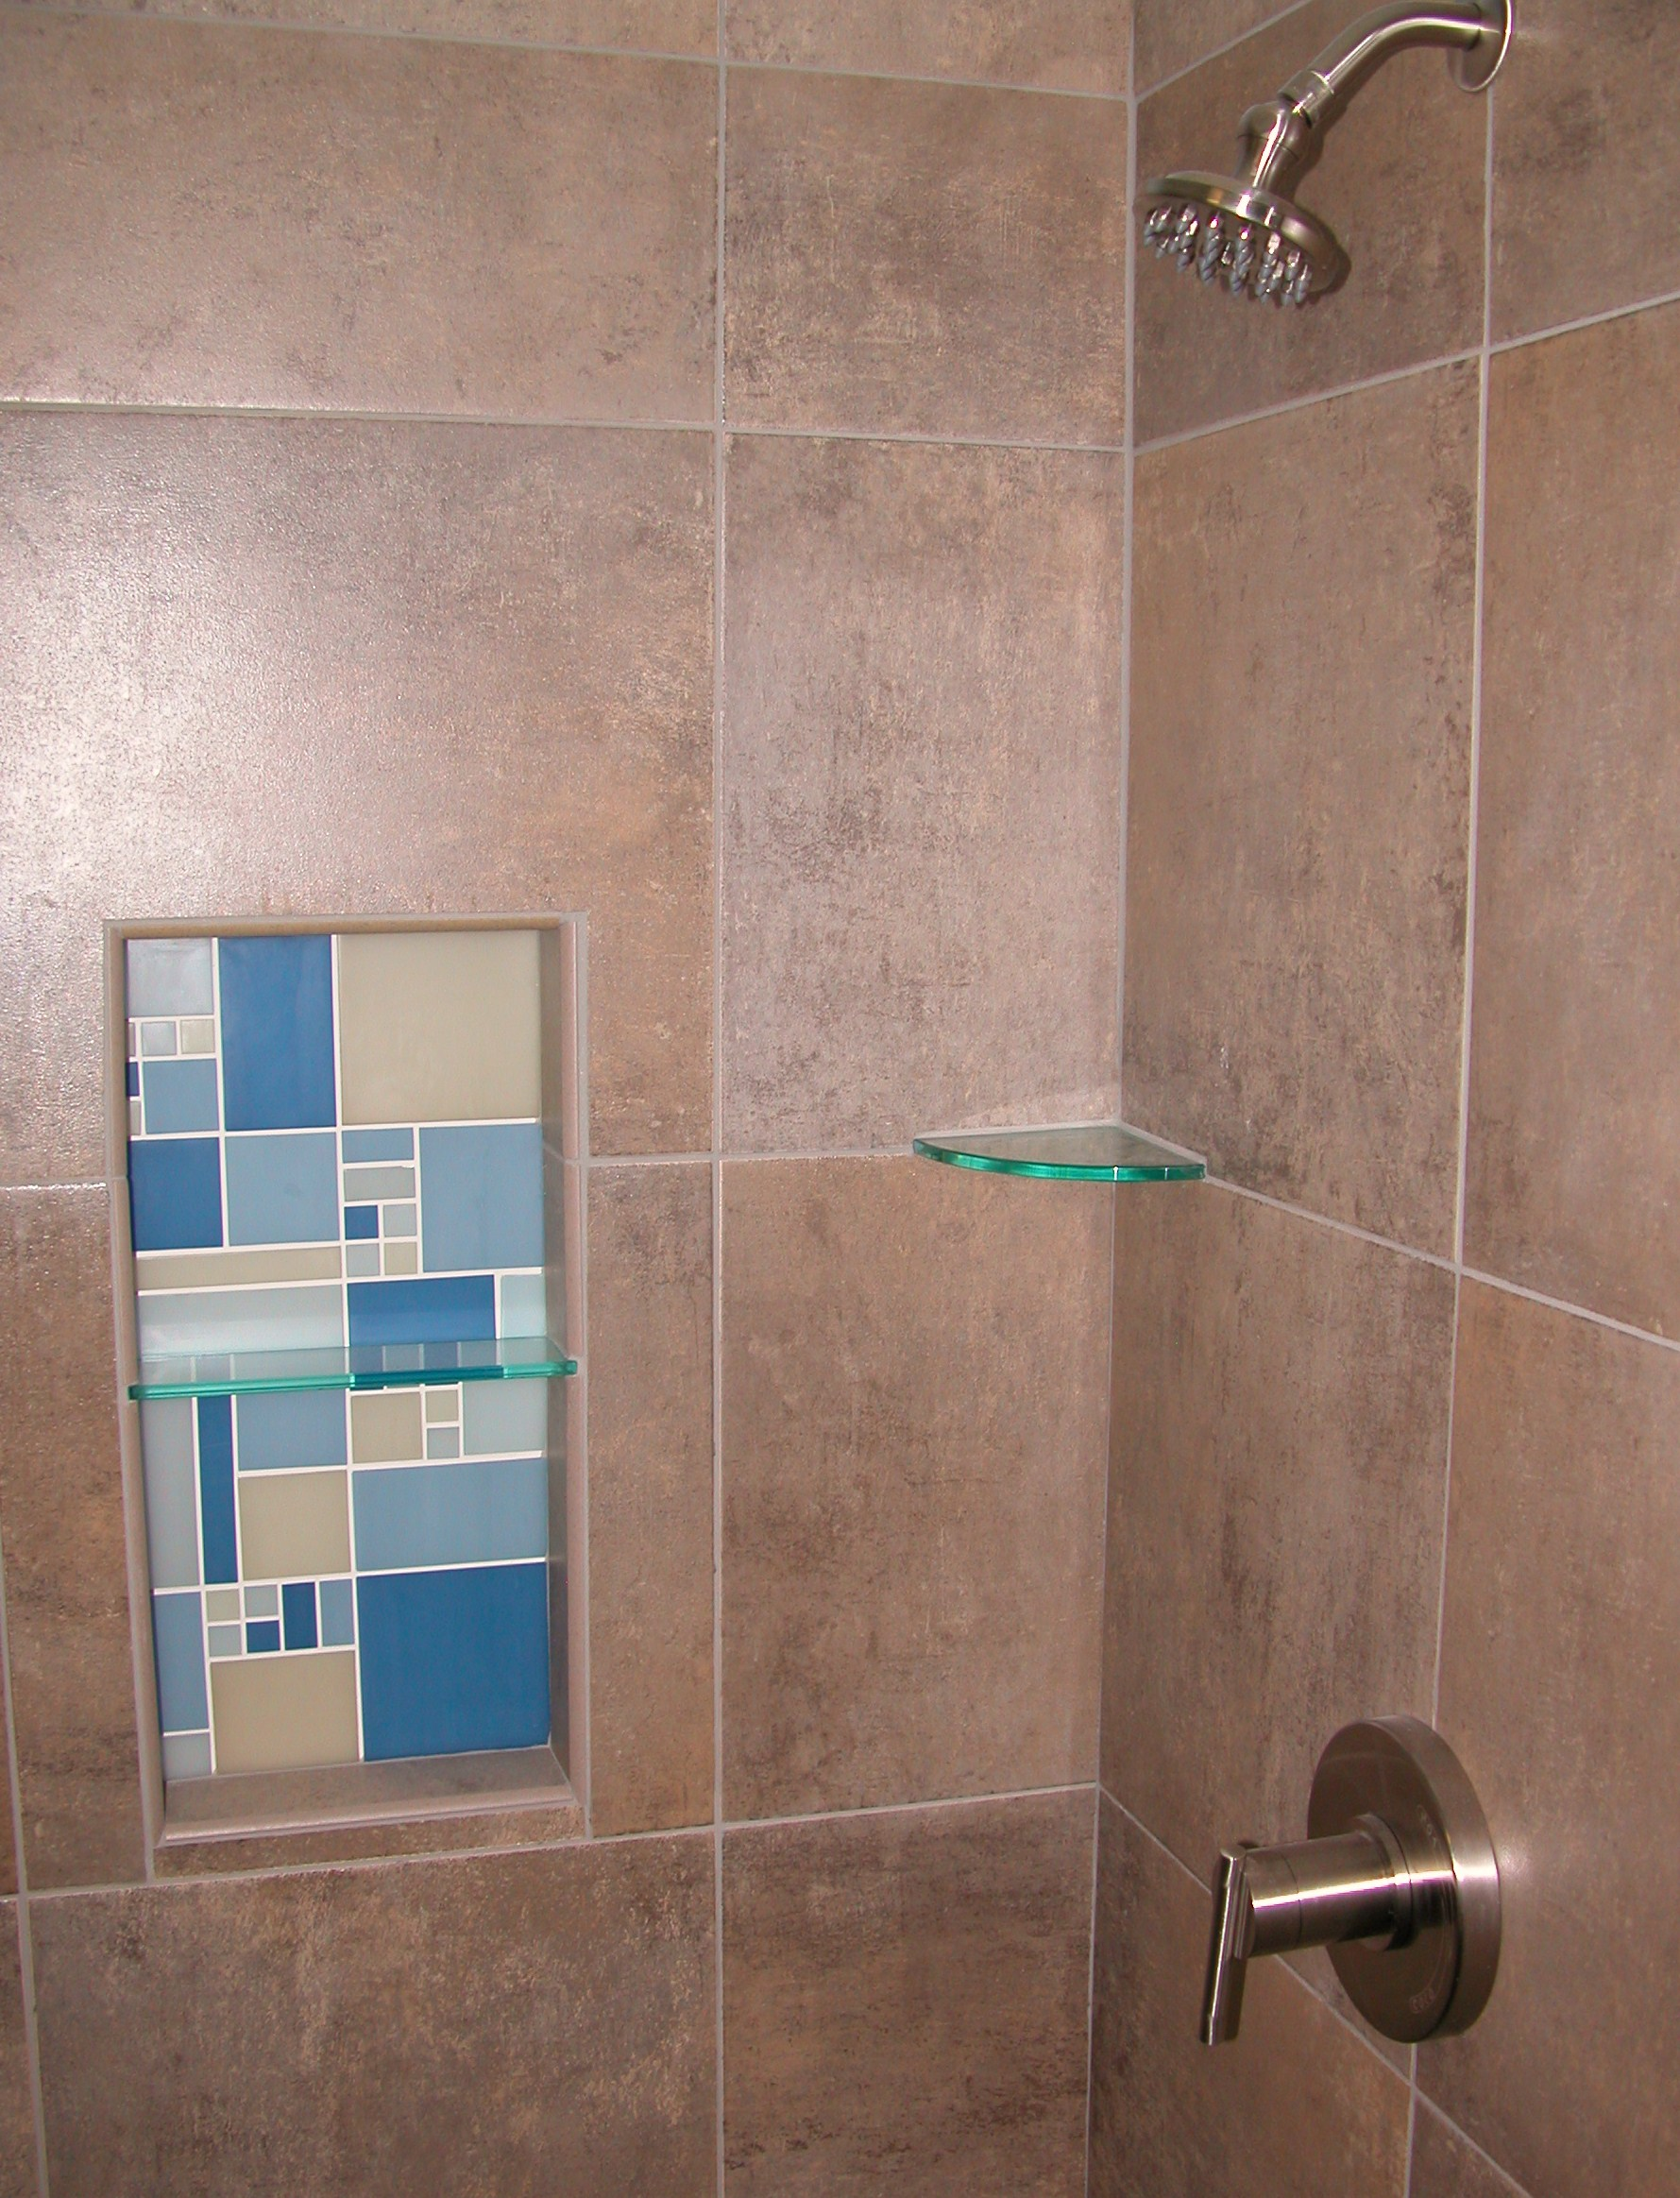 Tiled shower with mosaic niche and frameless shower door